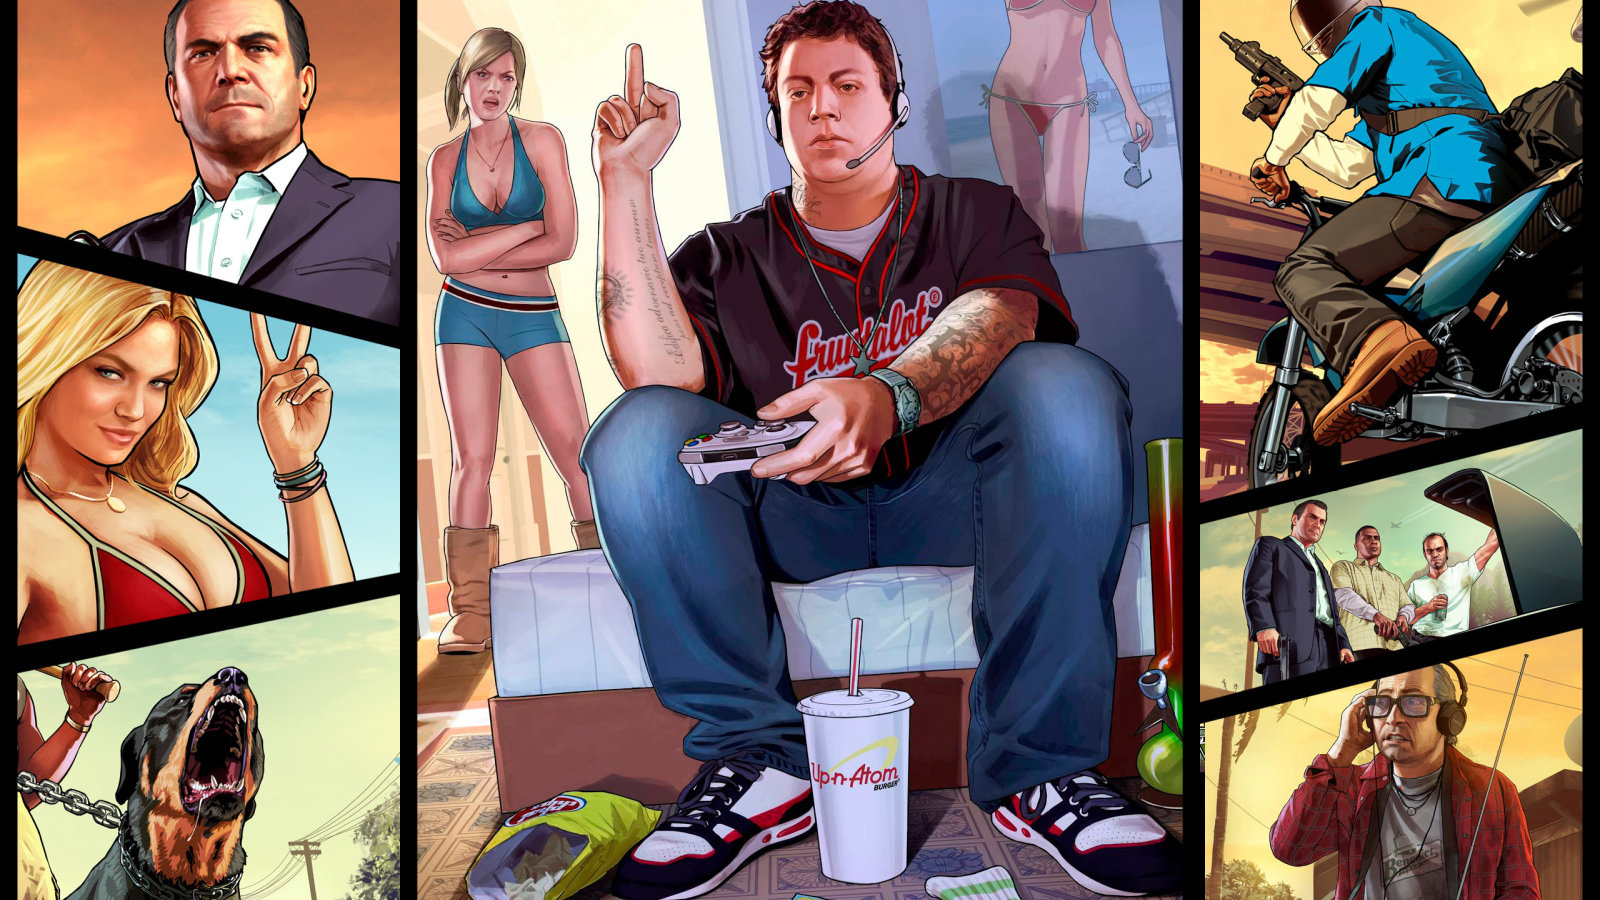 grand theft auto v (gta 5) wallpapers 1600x900 desktop backgrounds